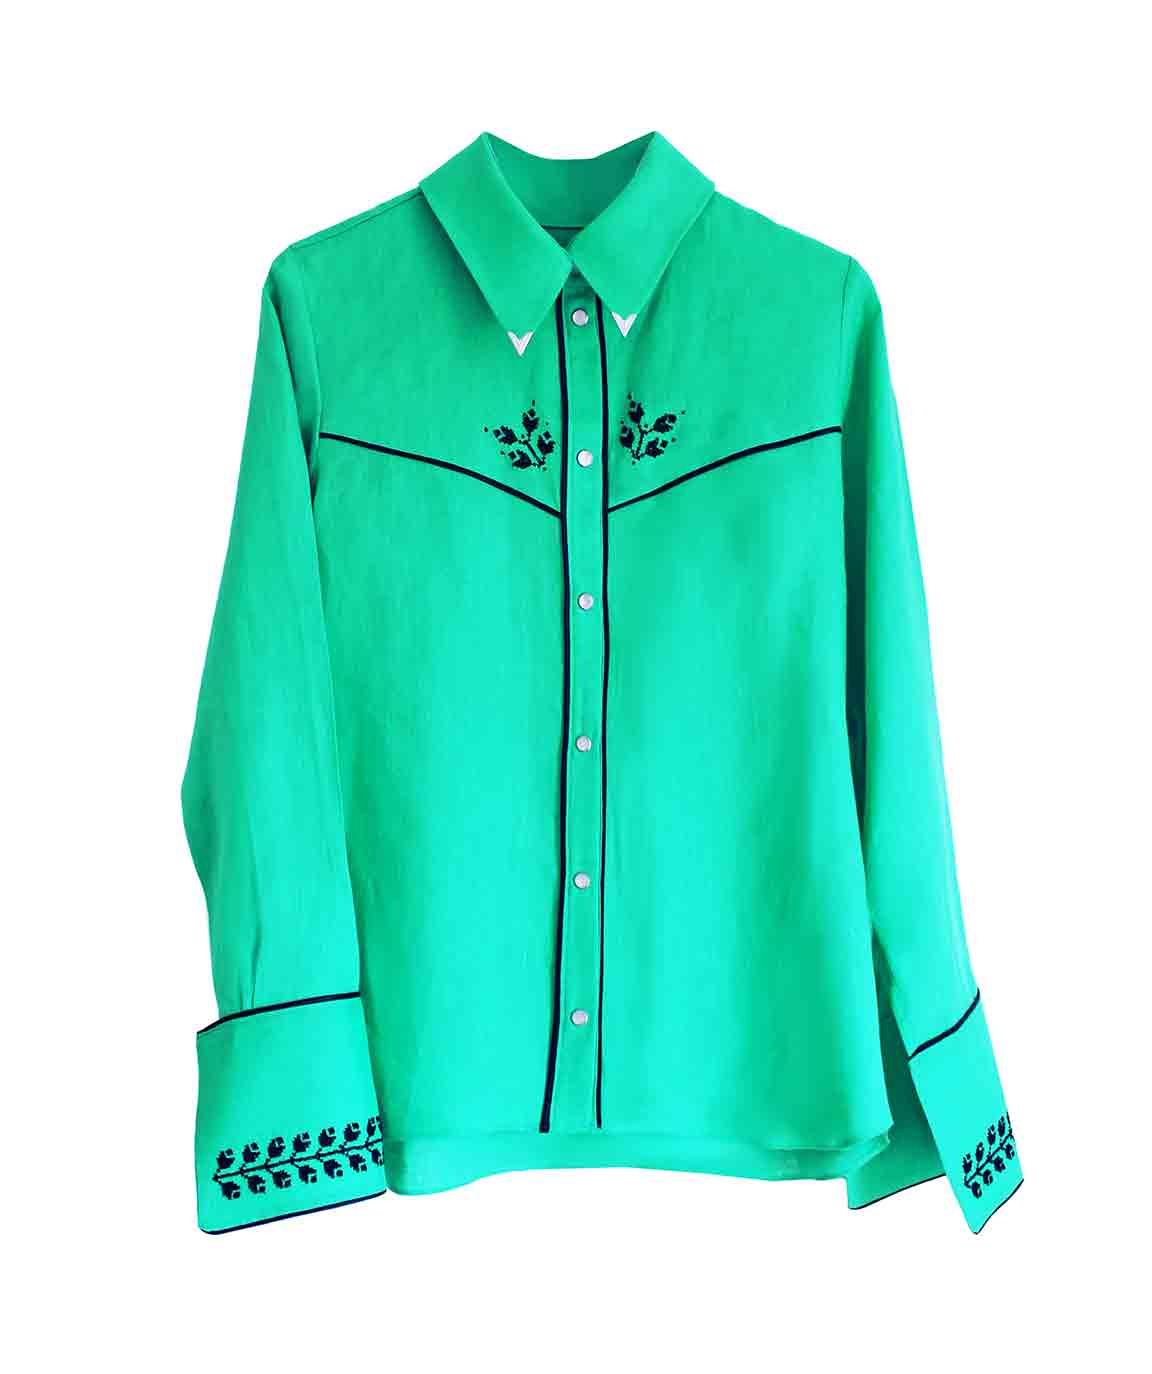 Jade Green Embroidered Cowboy Shirt